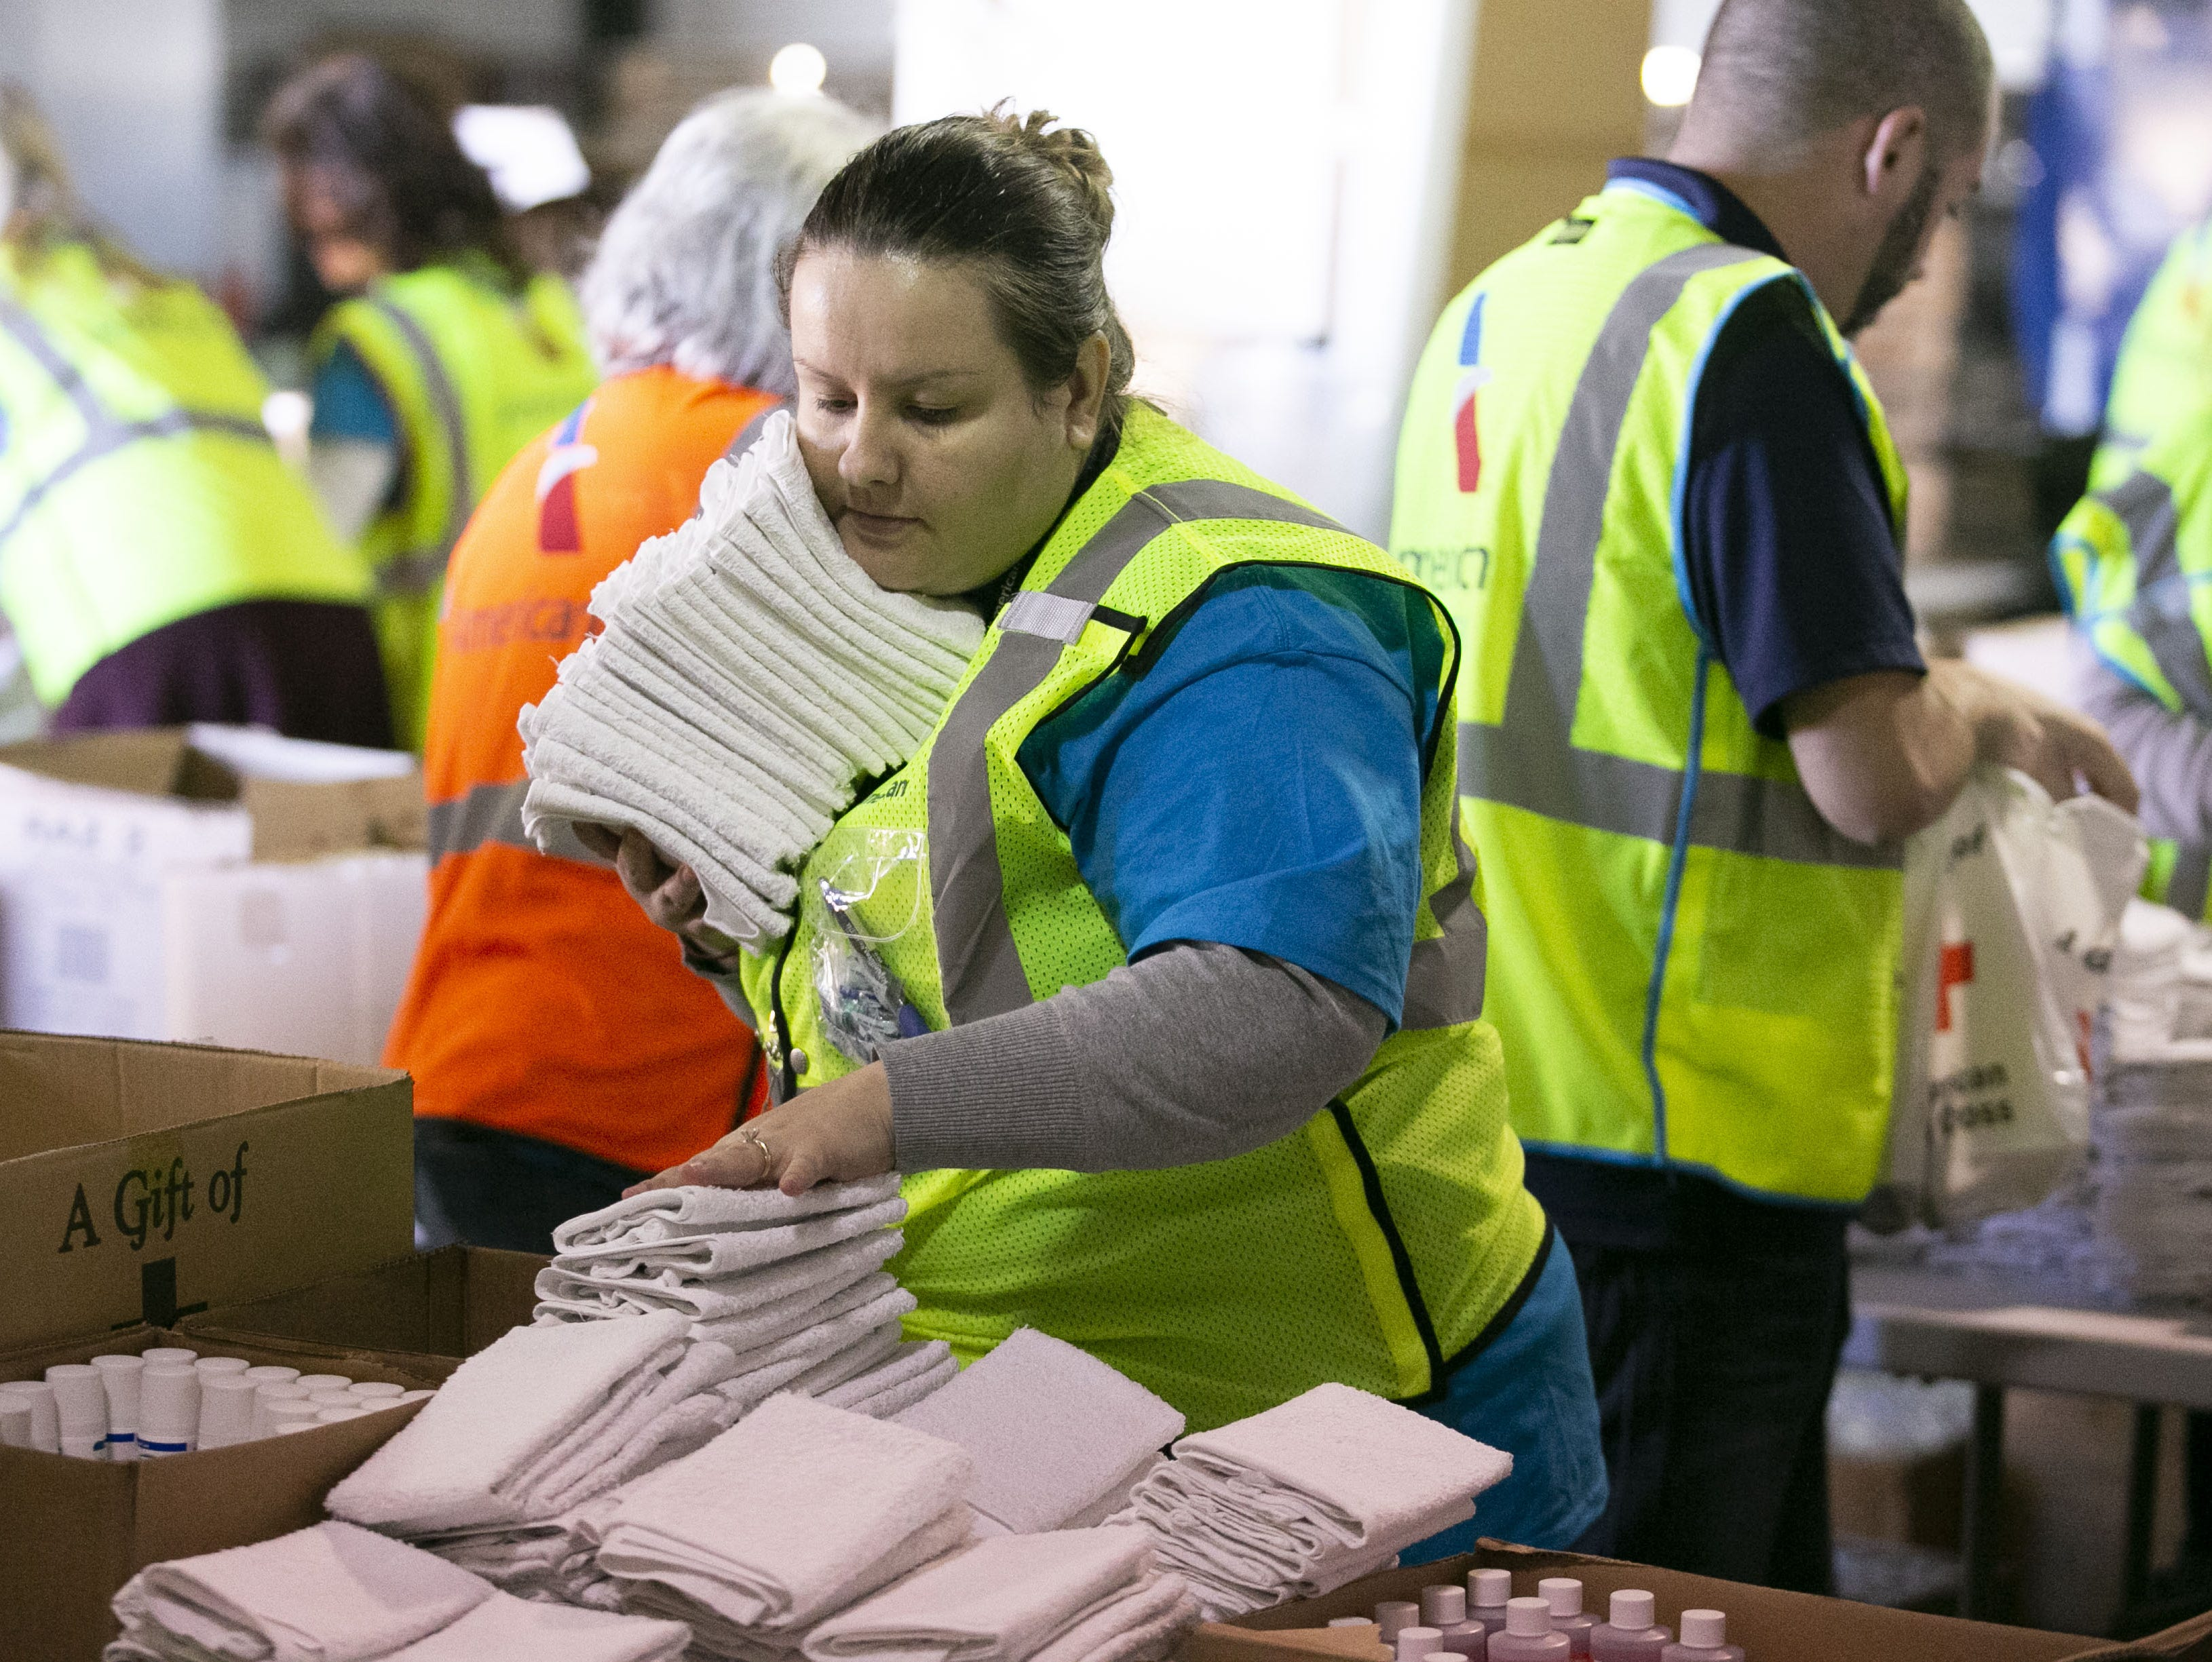 American Airlines employees Svetlana Dzhurova Mitova stacks wash clothes while packaging amenity kits for the victims of the California wildfires, at the American Airlines cargo facility in Phoenix on Tuesday, Nov. 27, 2018.